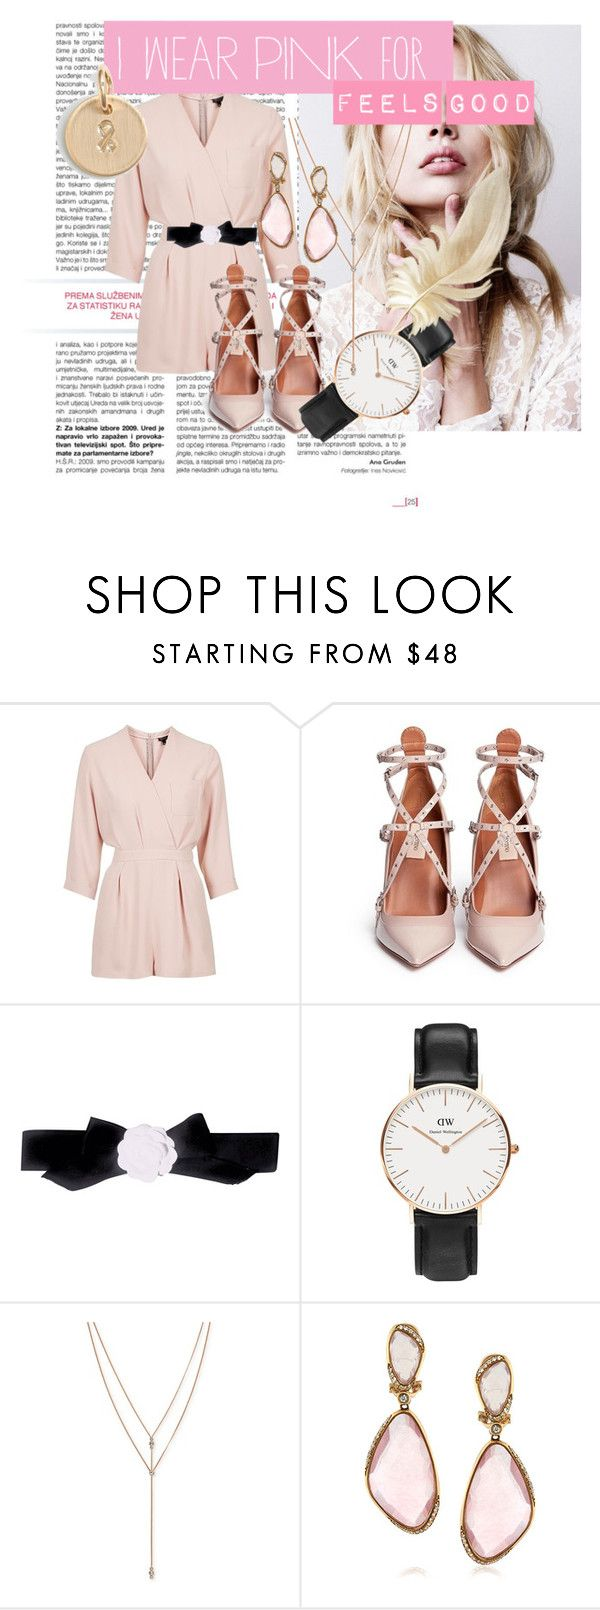 Feels good by hacii on Polyvore featuring moda, Topshop, Valentino, Daniel Wellington, Nashelle, Mark Broumand, Vince Camuto, Pink, cure and feelsgood